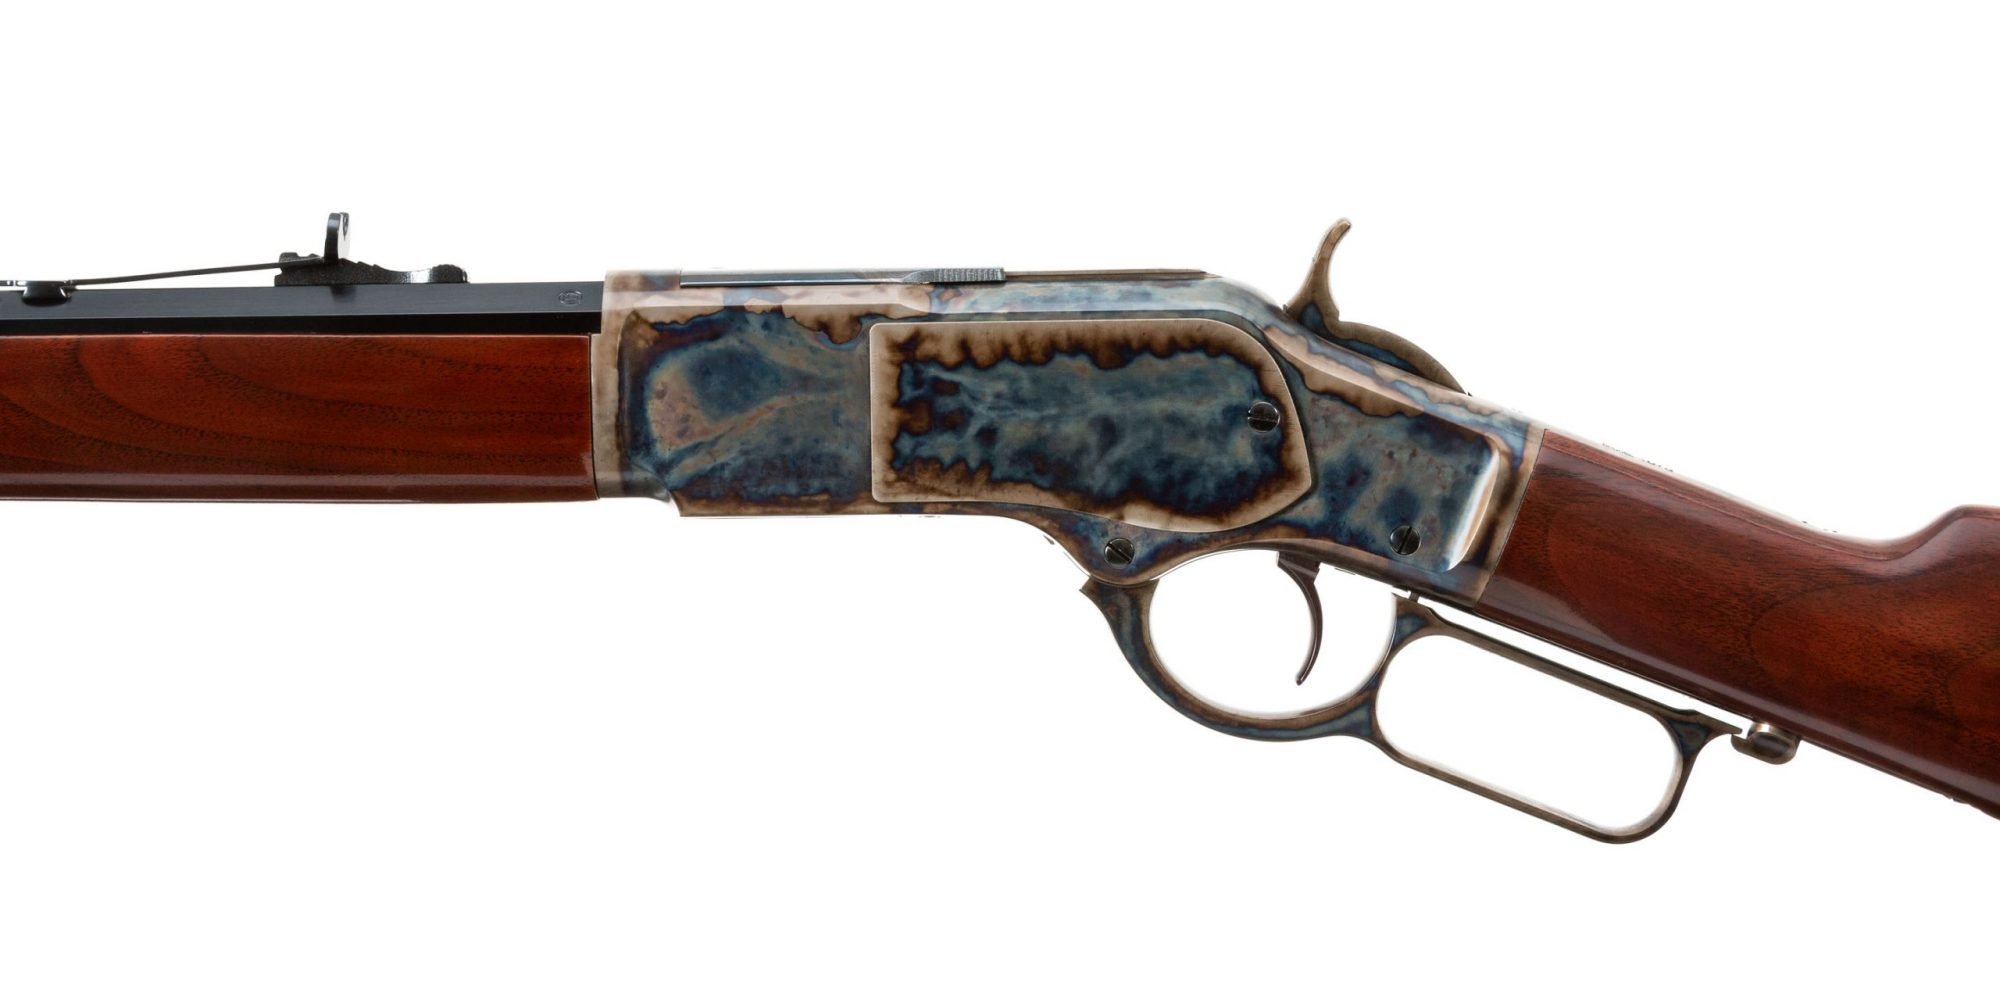 Photo of a new, color case hardened Winchester 1873 rifle, featuring bone charcoal color case hardening by Turnbull Restoration of Bloomfield, NY